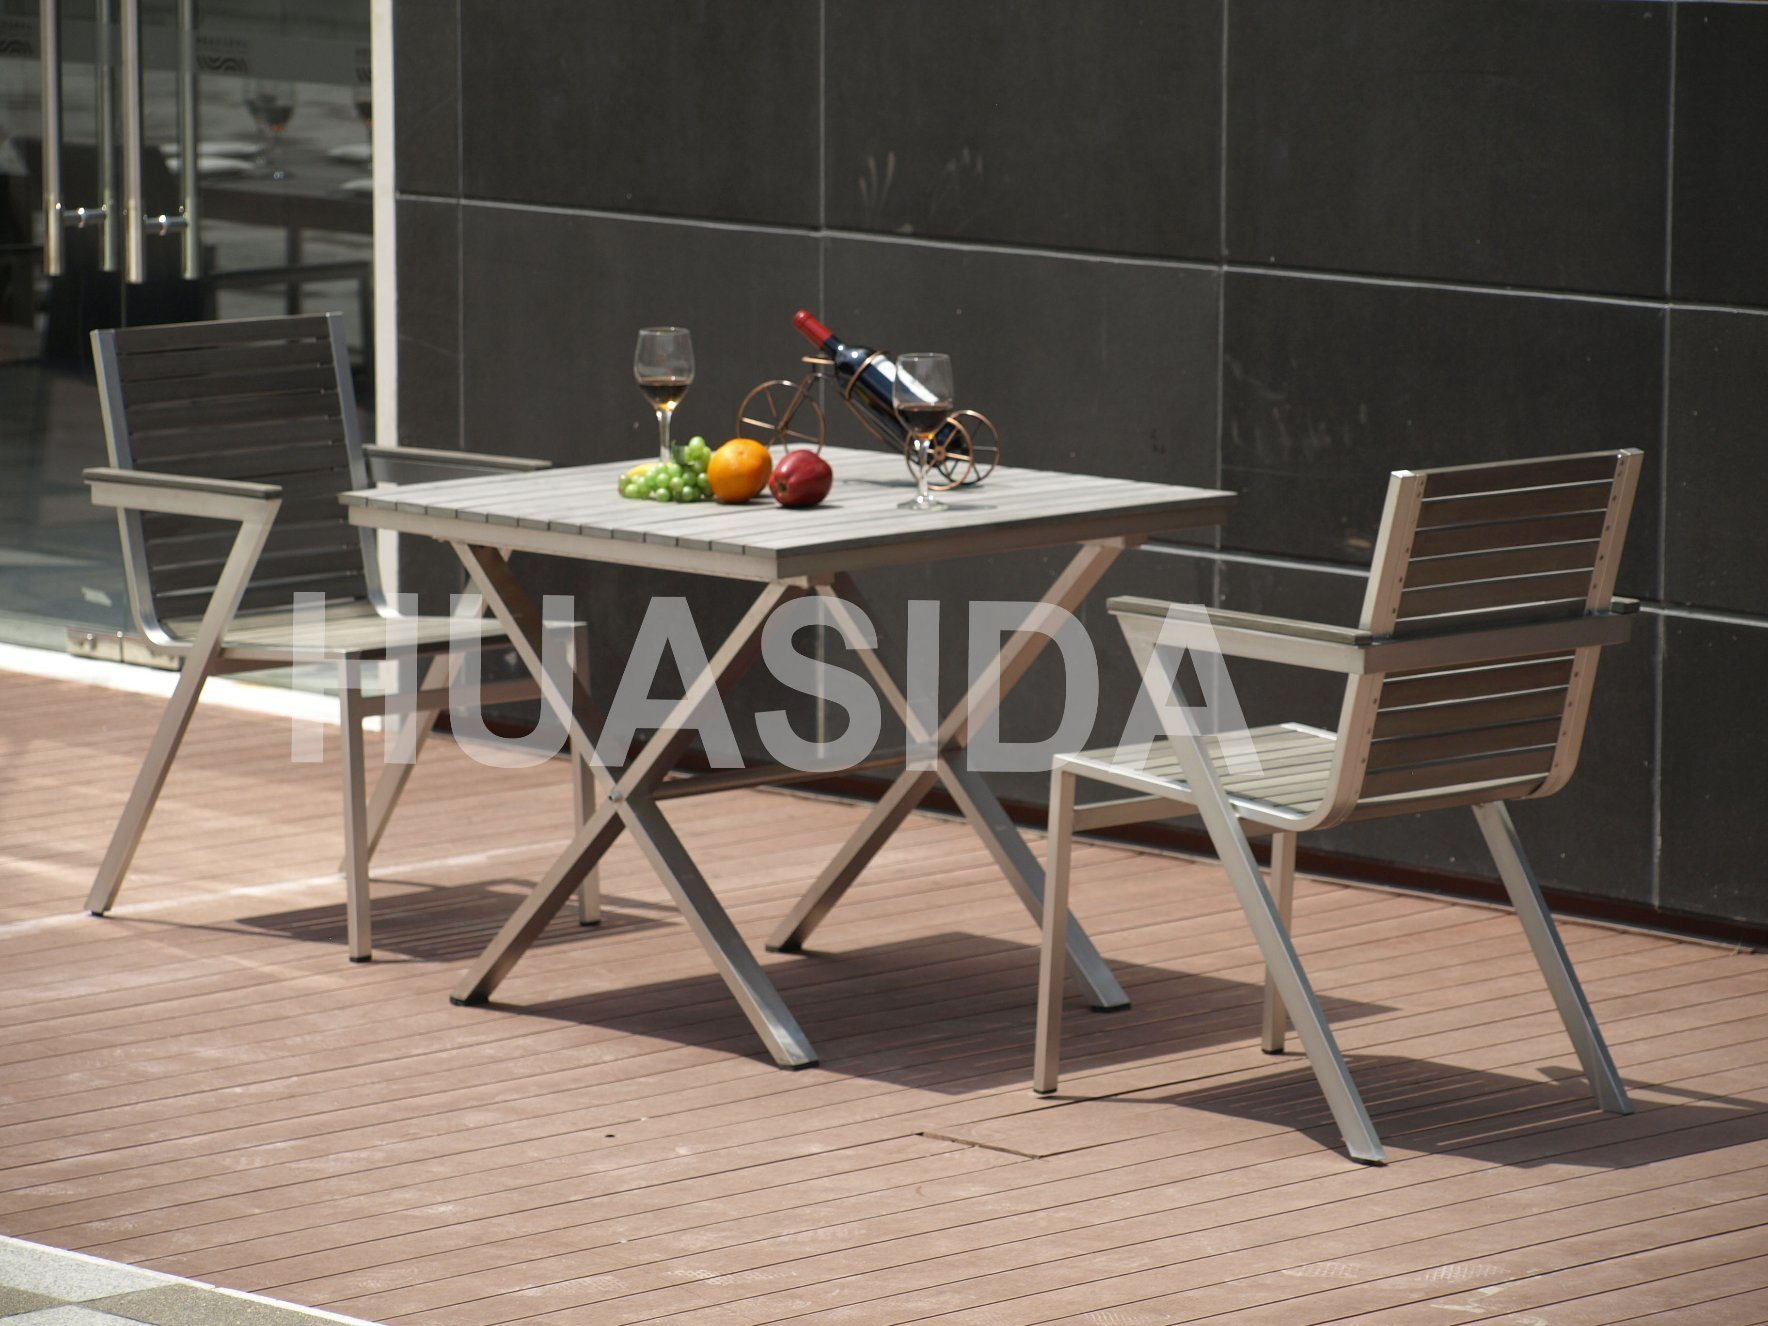 304 Glossy UV Resistant Stainless Steel Outdoor Dining Table Set